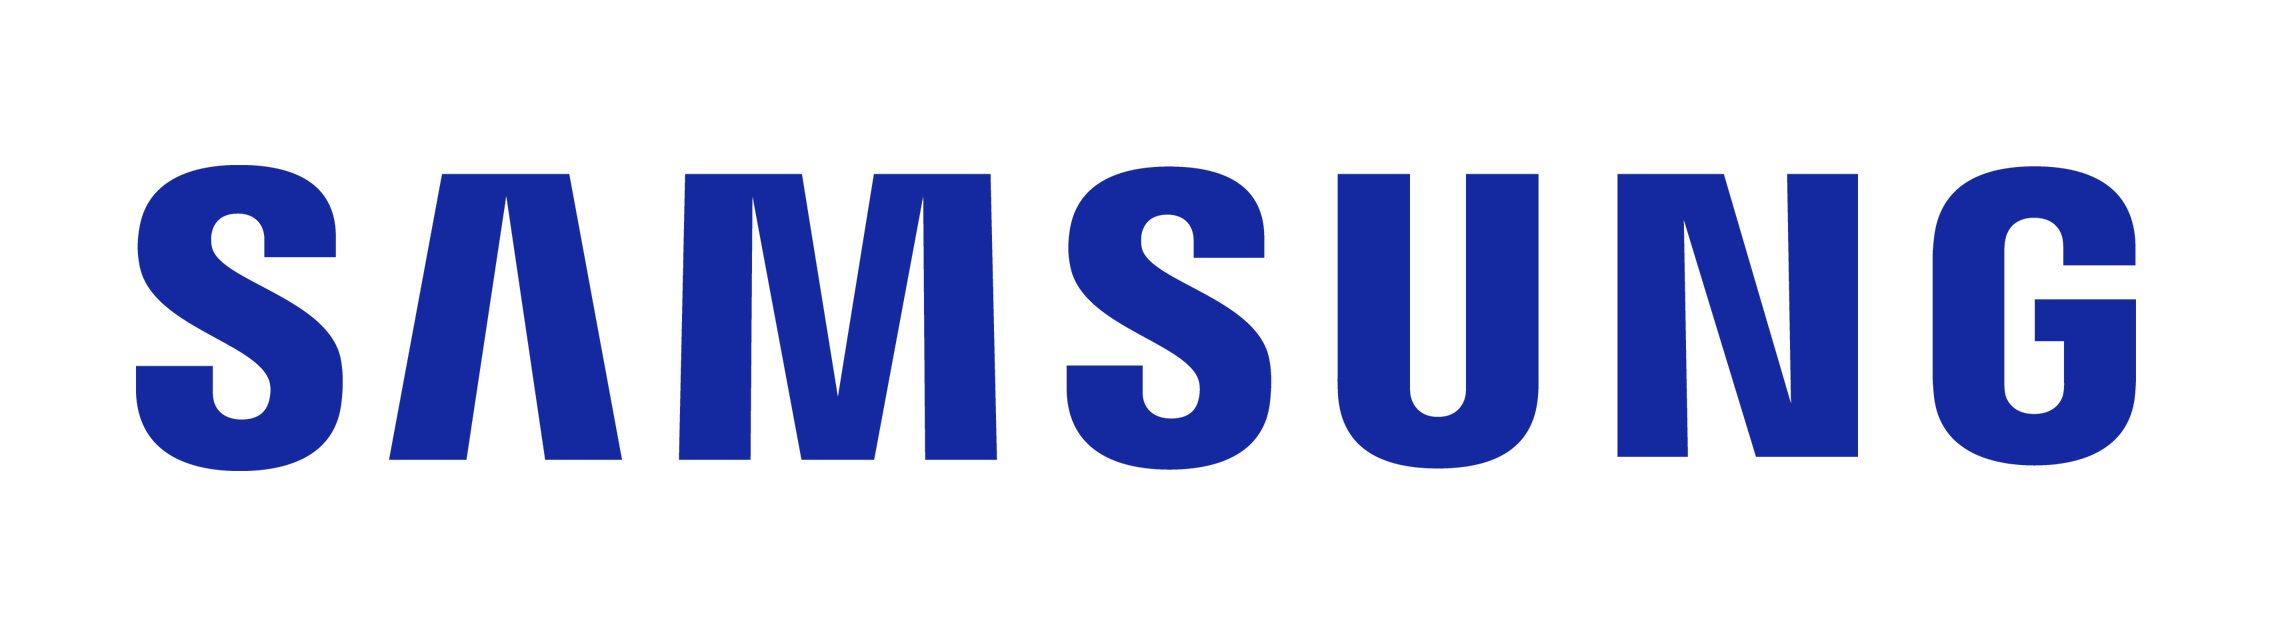 //www.texasstatesociety.org/wp-content/uploads/2019/07/samsung_logo_PNG9.png